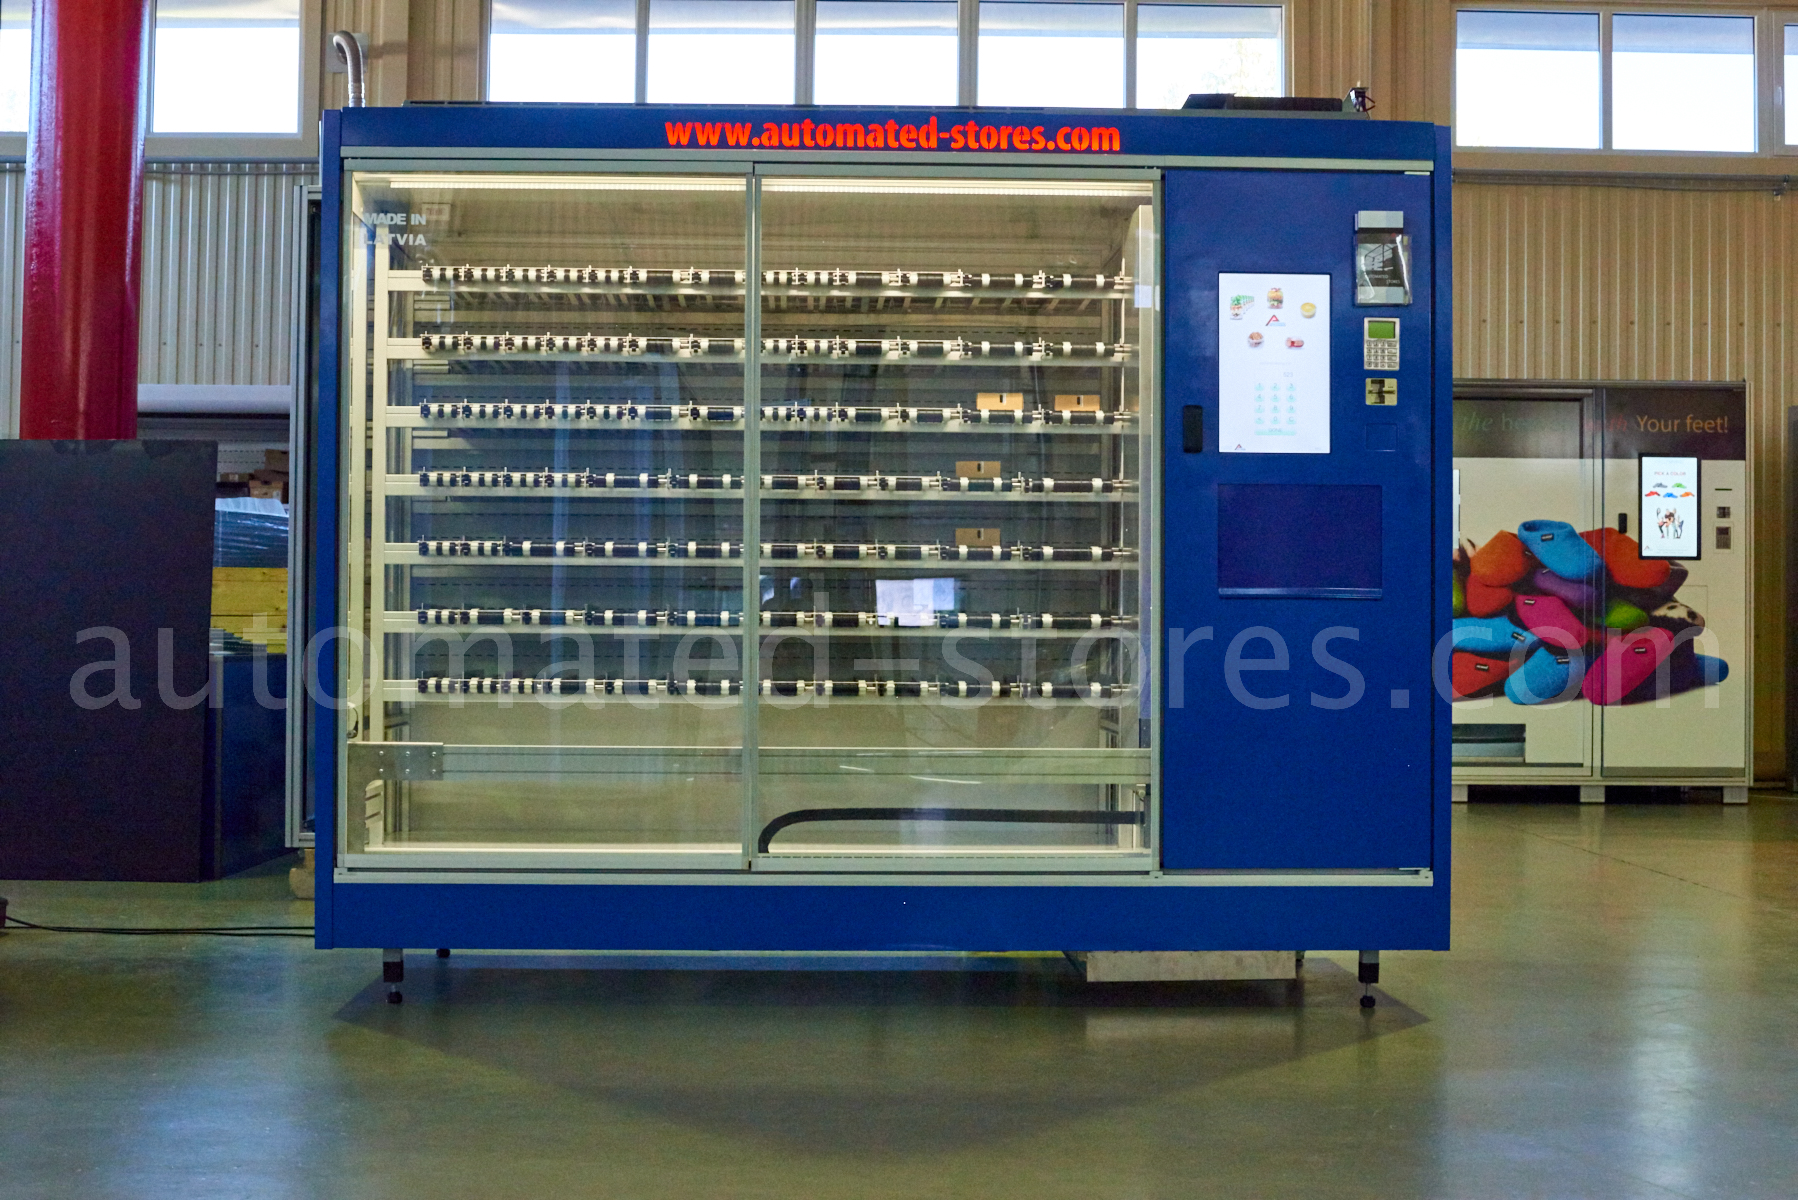 Automated stores